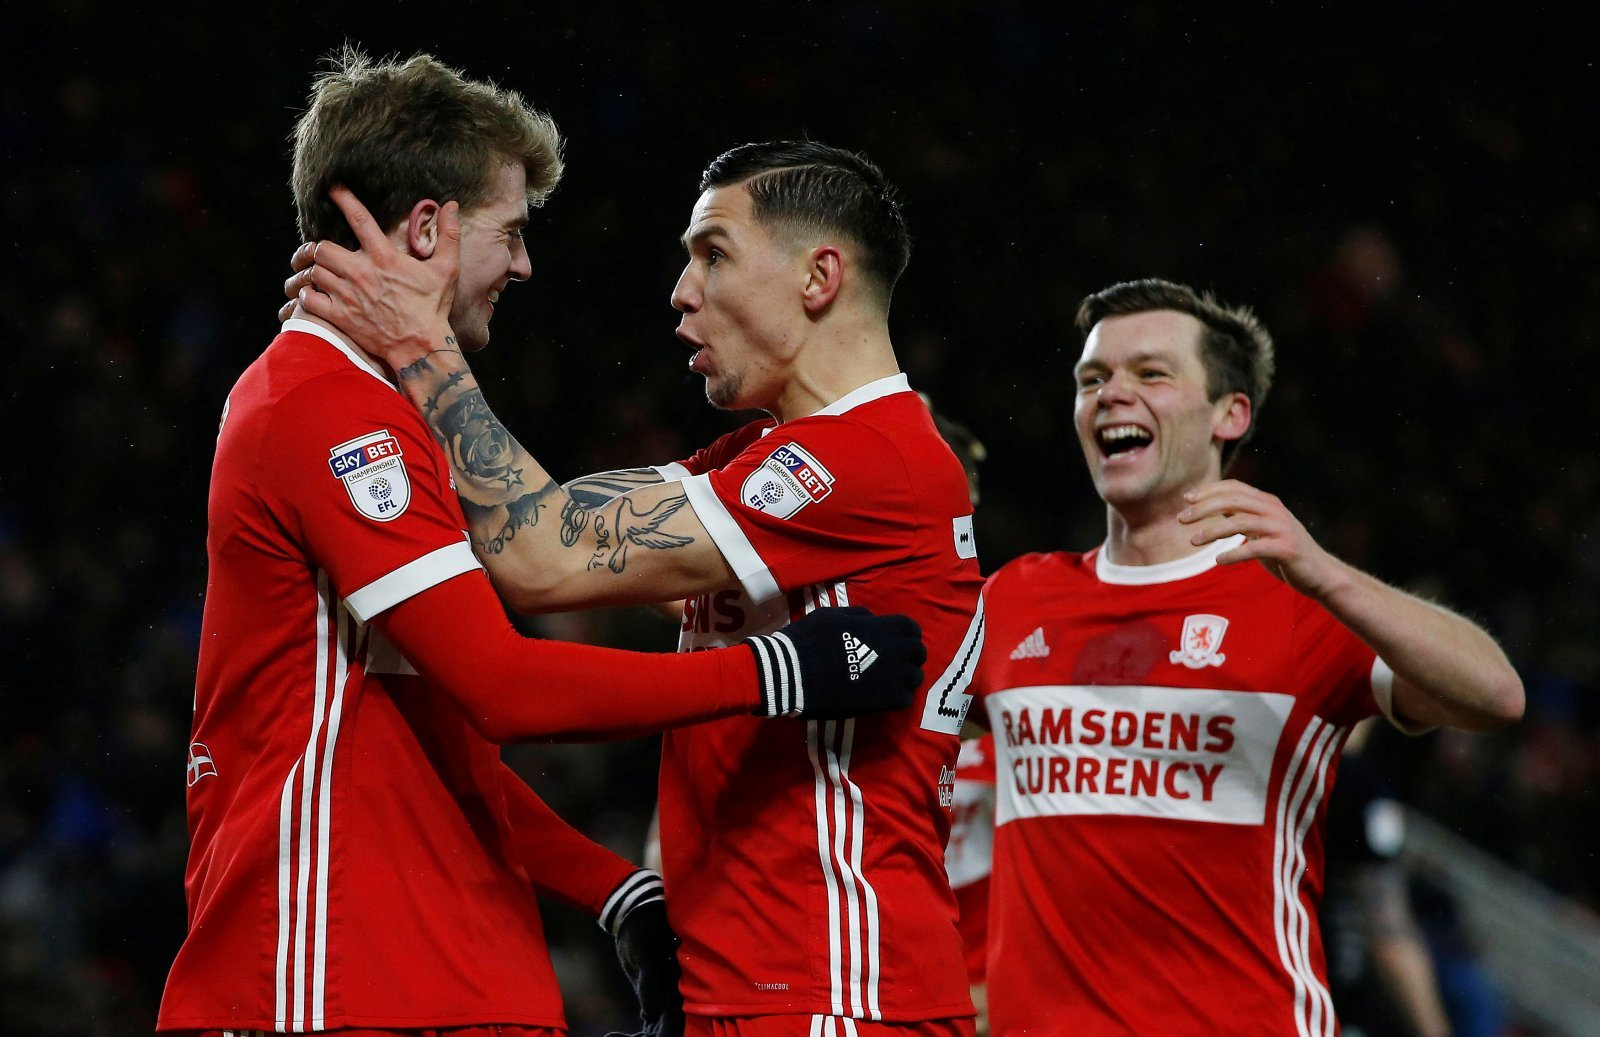 Re-signing Mo Besic brings delight to many Middlesbrough fans